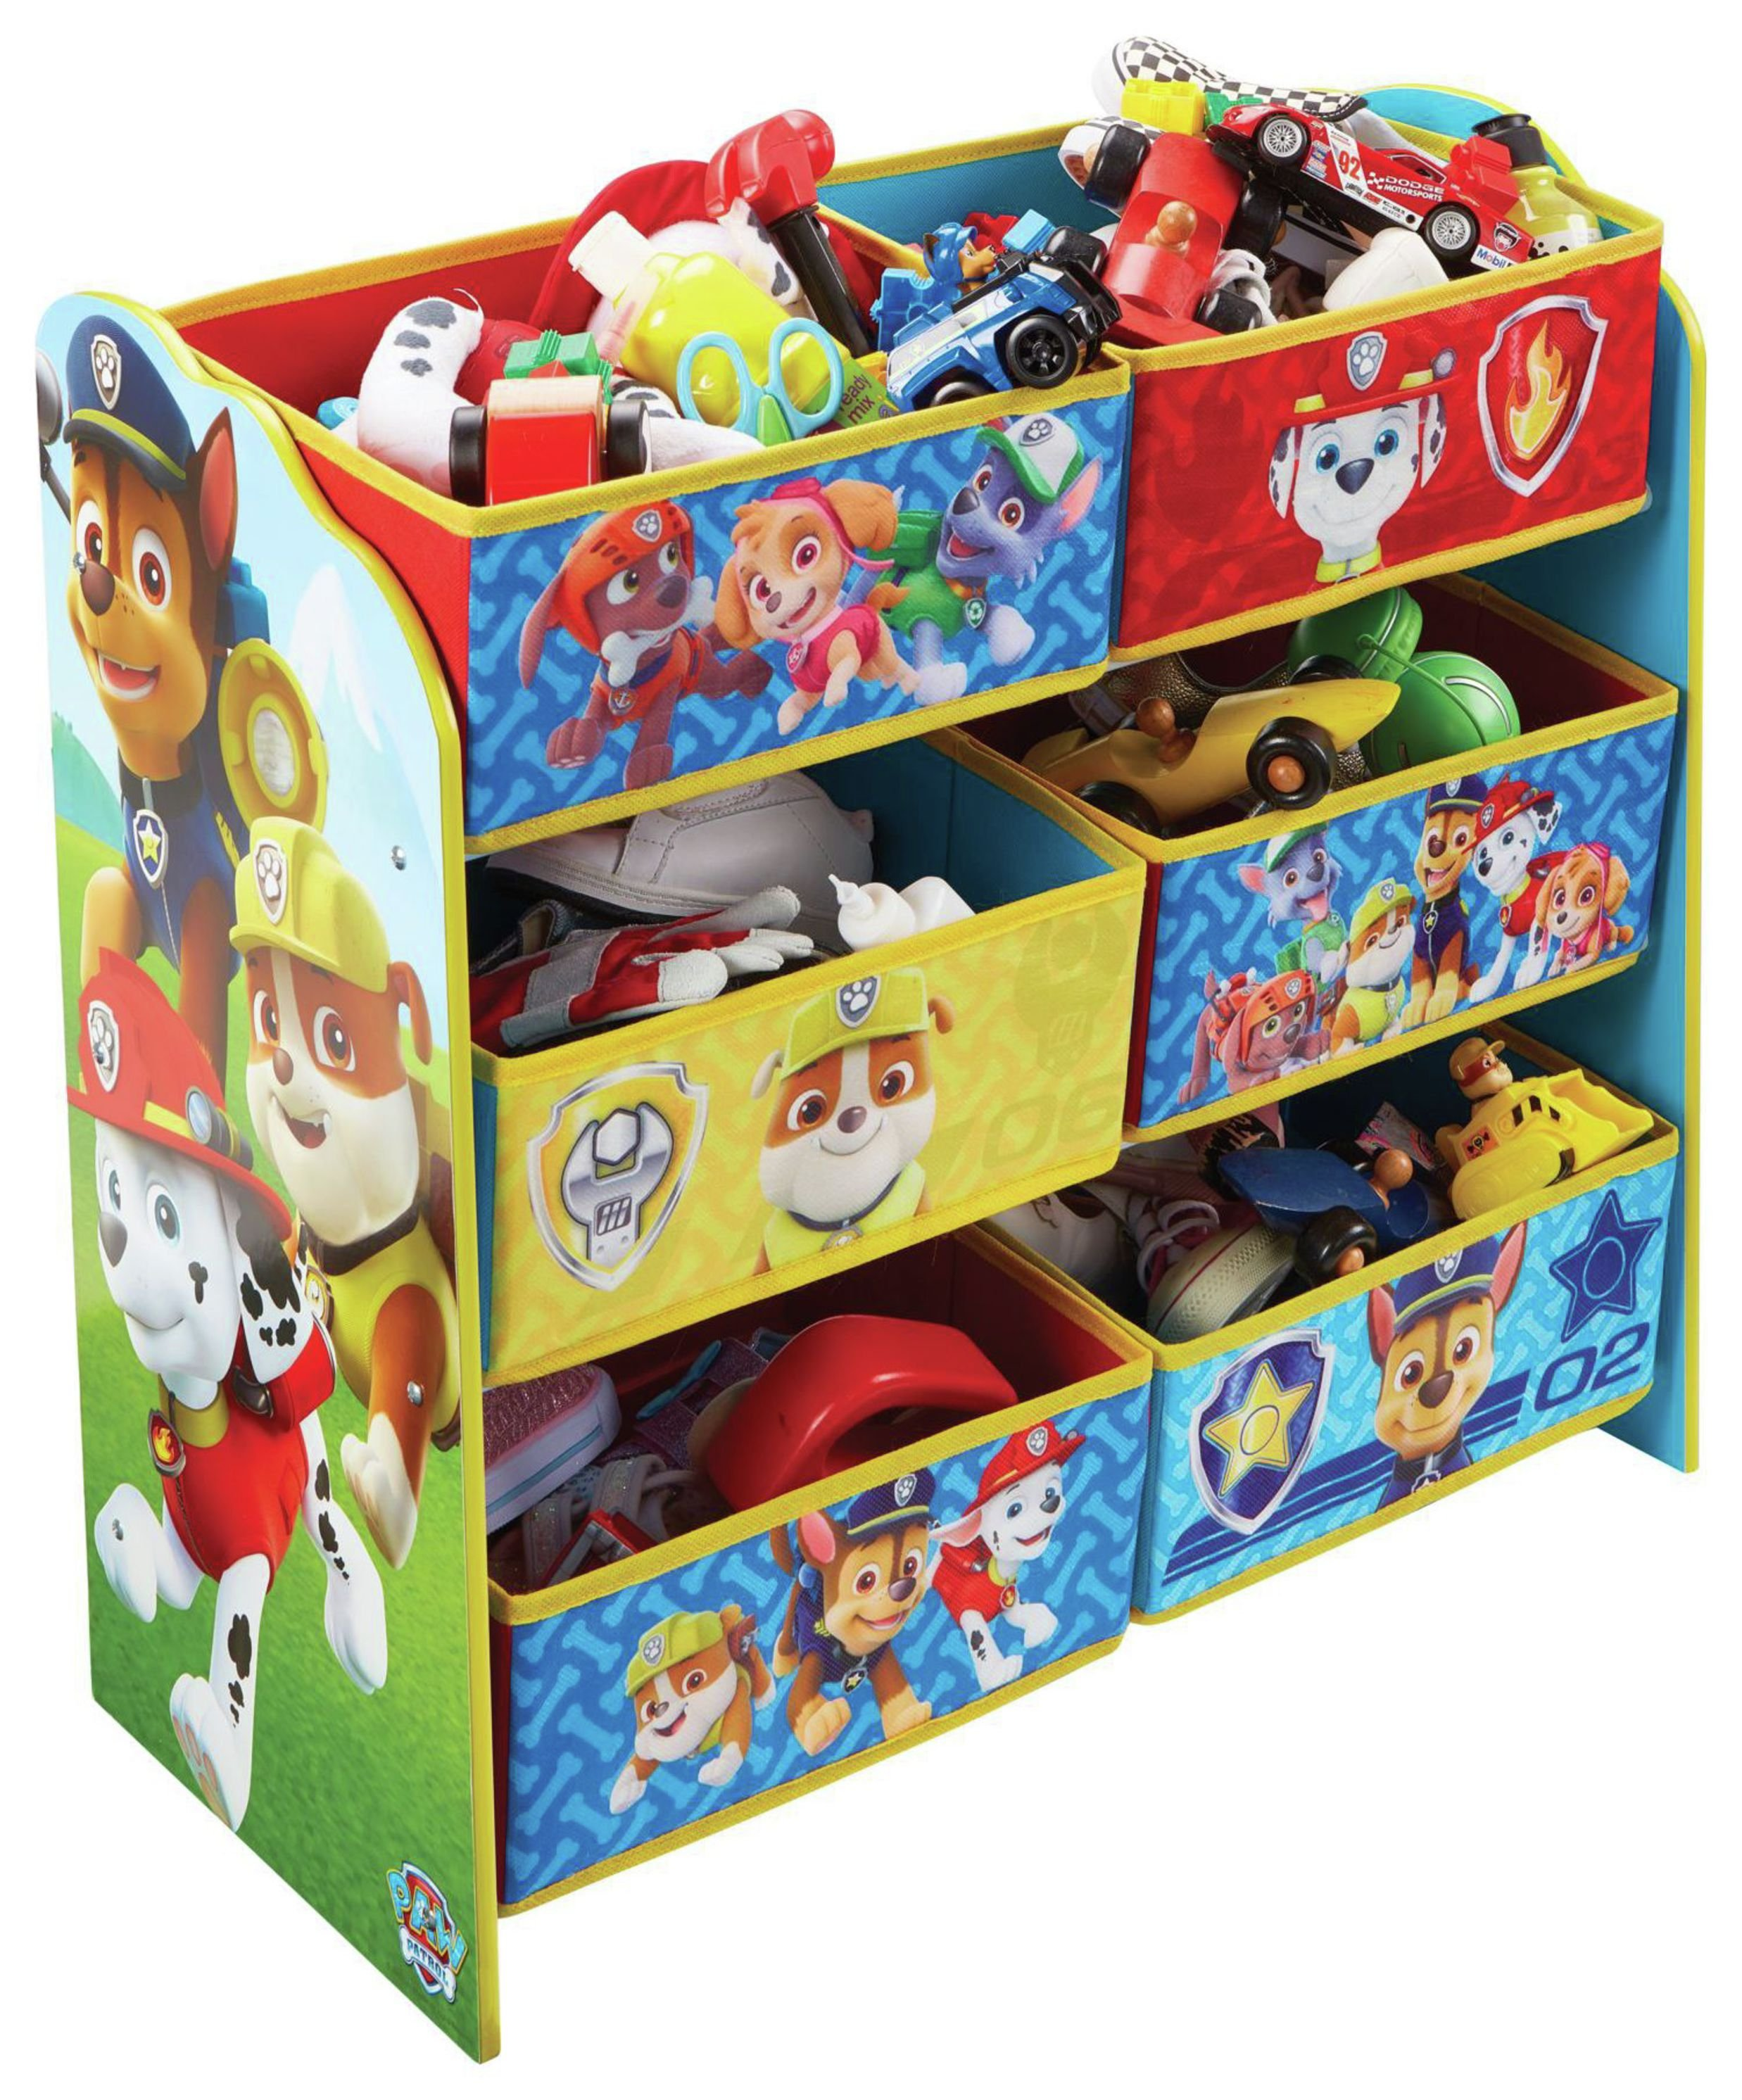 Paw Patrol Toy Organizer Bin Cubby Kids Child Storage Box: SALE On Paw Patrol Kids Storage Unit